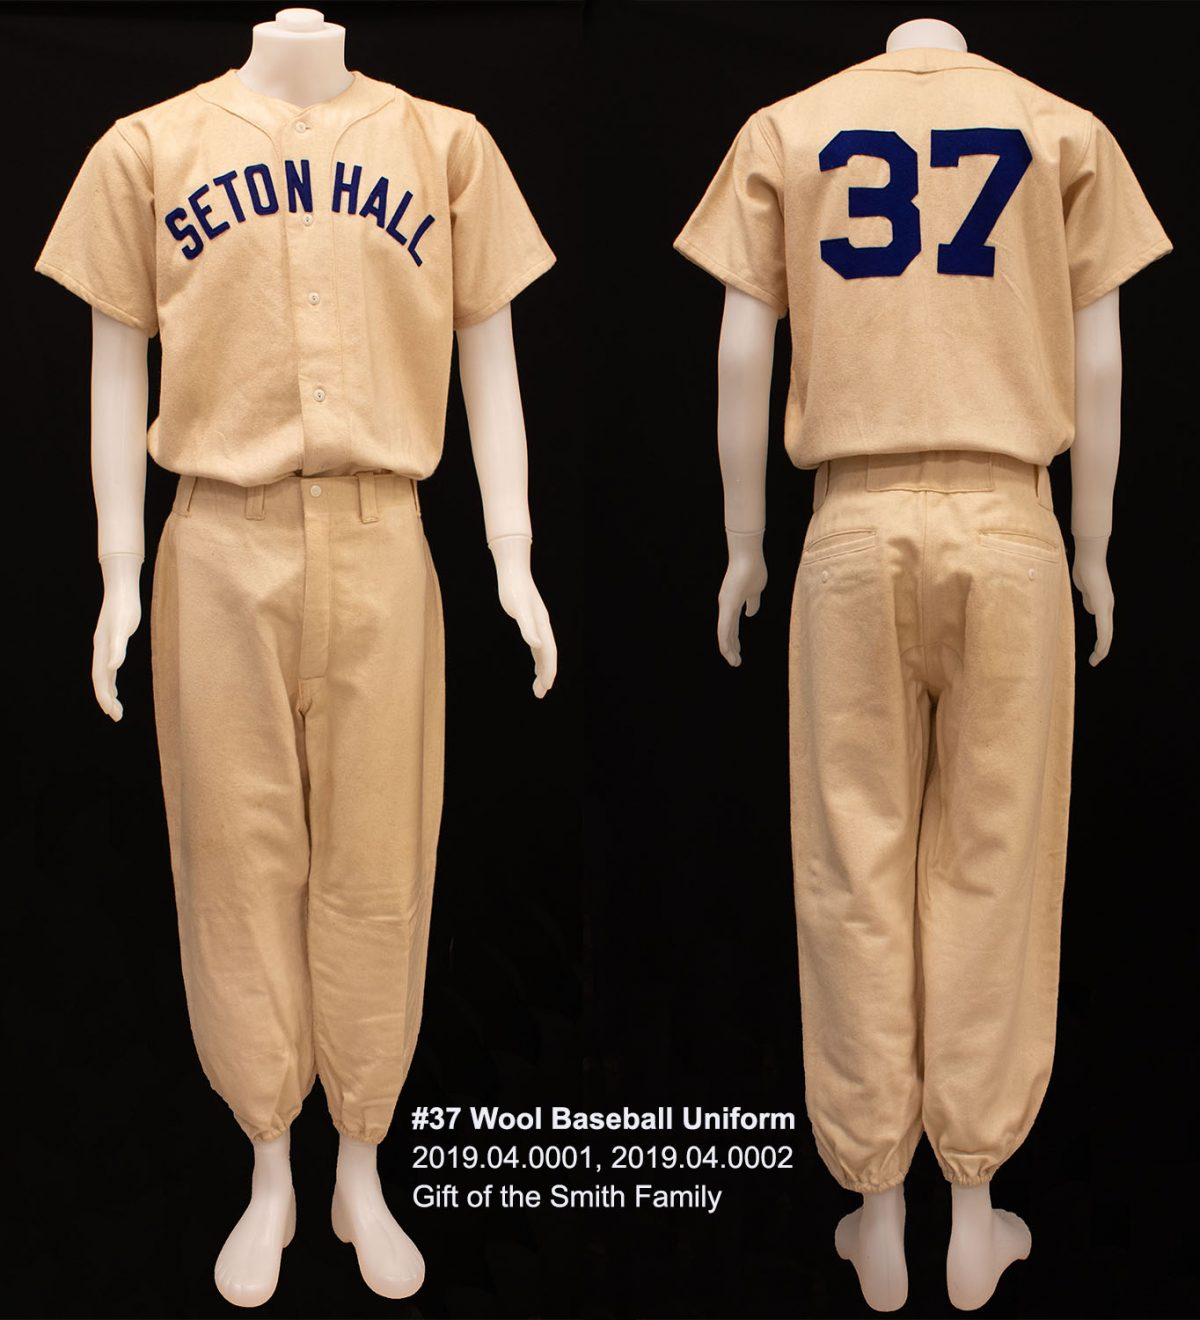 #37 Wool Baseball Uniform, 2019.04.0001, Gift of the Smith Family